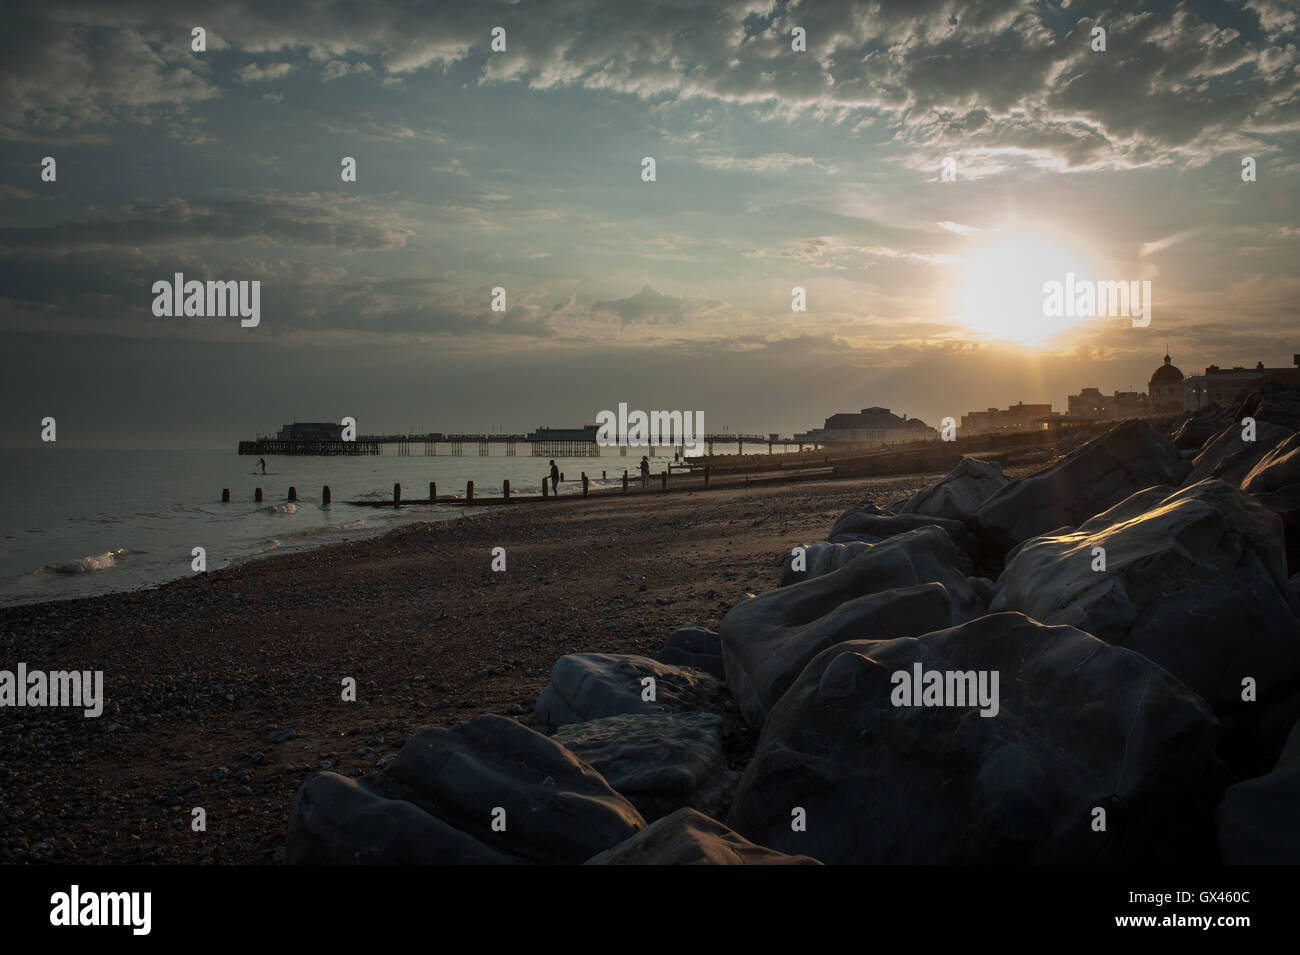 A beautiful sunset over the beach, sea and Worthing Pier in Worthing, West Sussex, England. Stock Photo